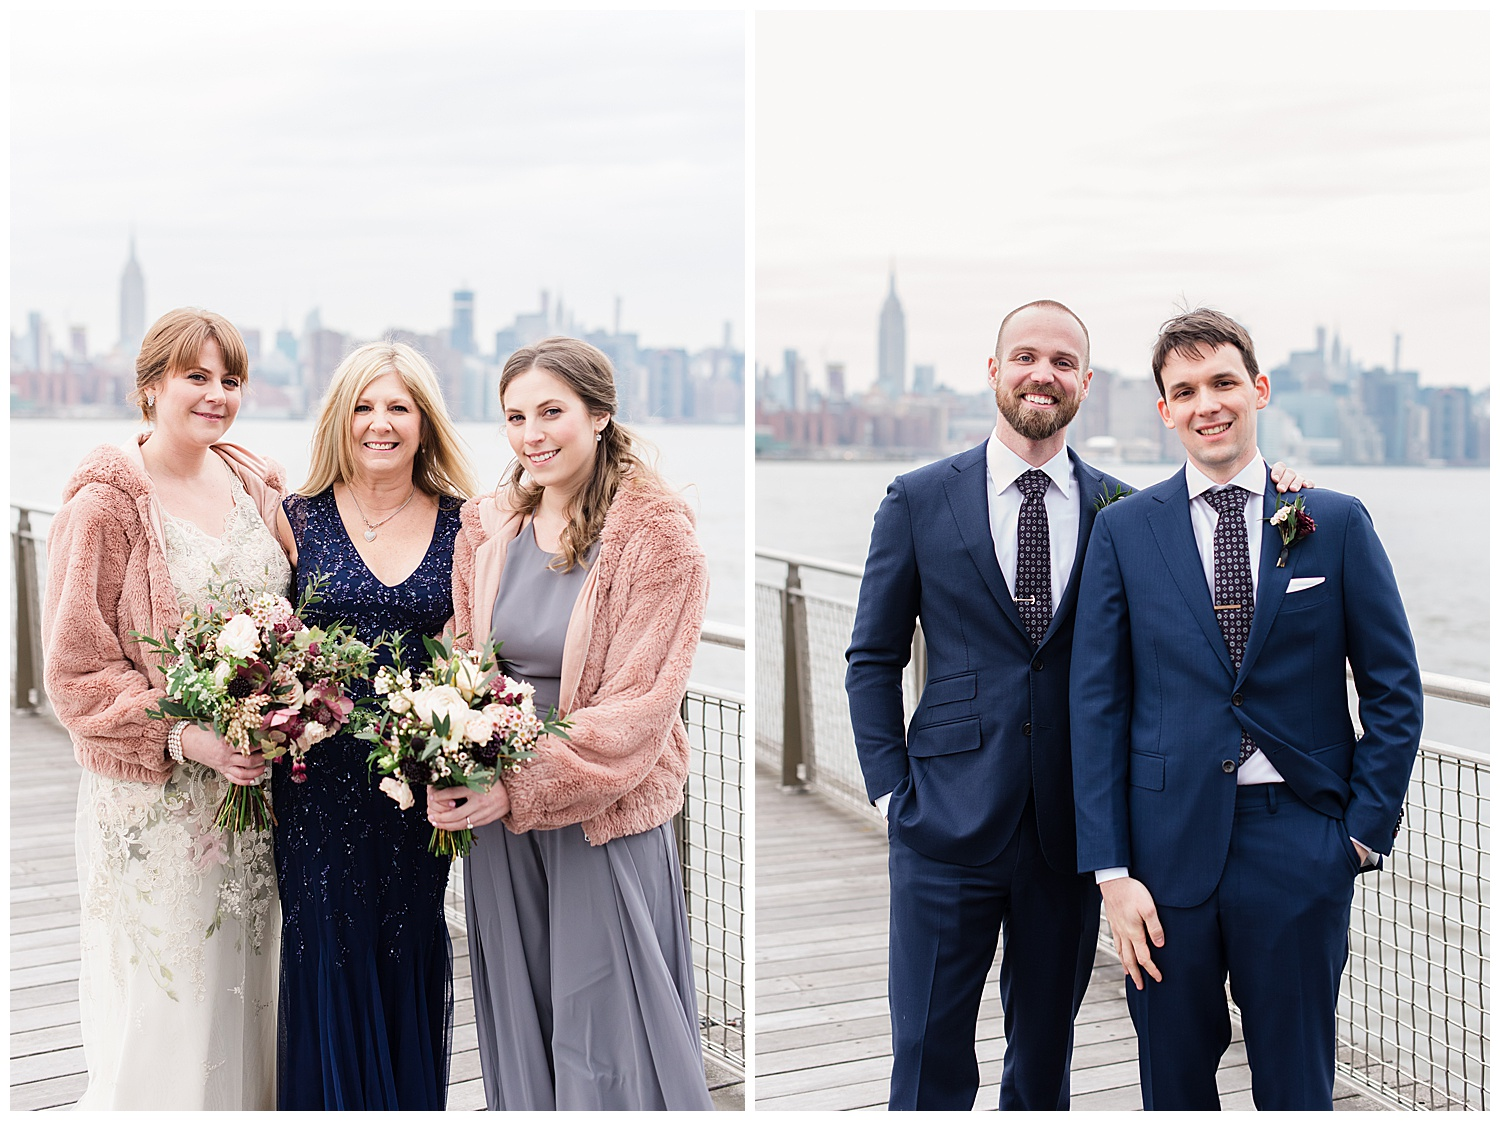 BrooklynWineryWeddingGreenpointBKWeddingPhotographer029.JPG